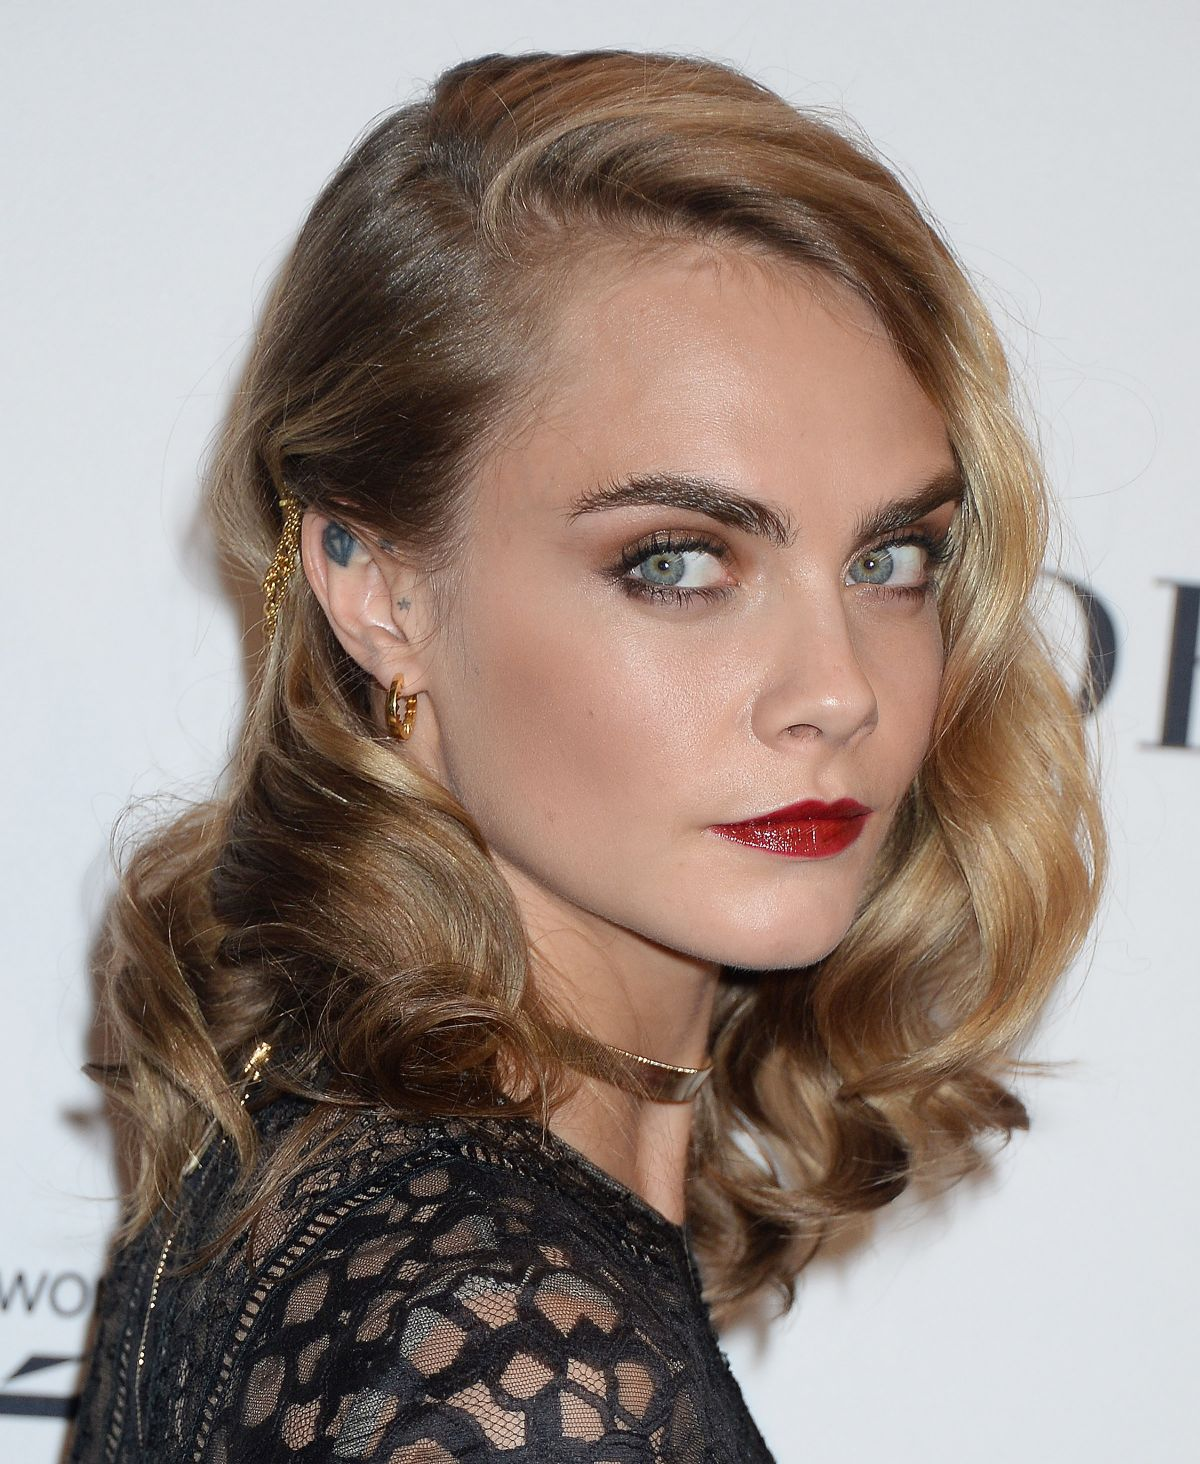 CARA DELEVINGNE at Glamour Women of the Year 2016 in Los Angeles 11/14/2016